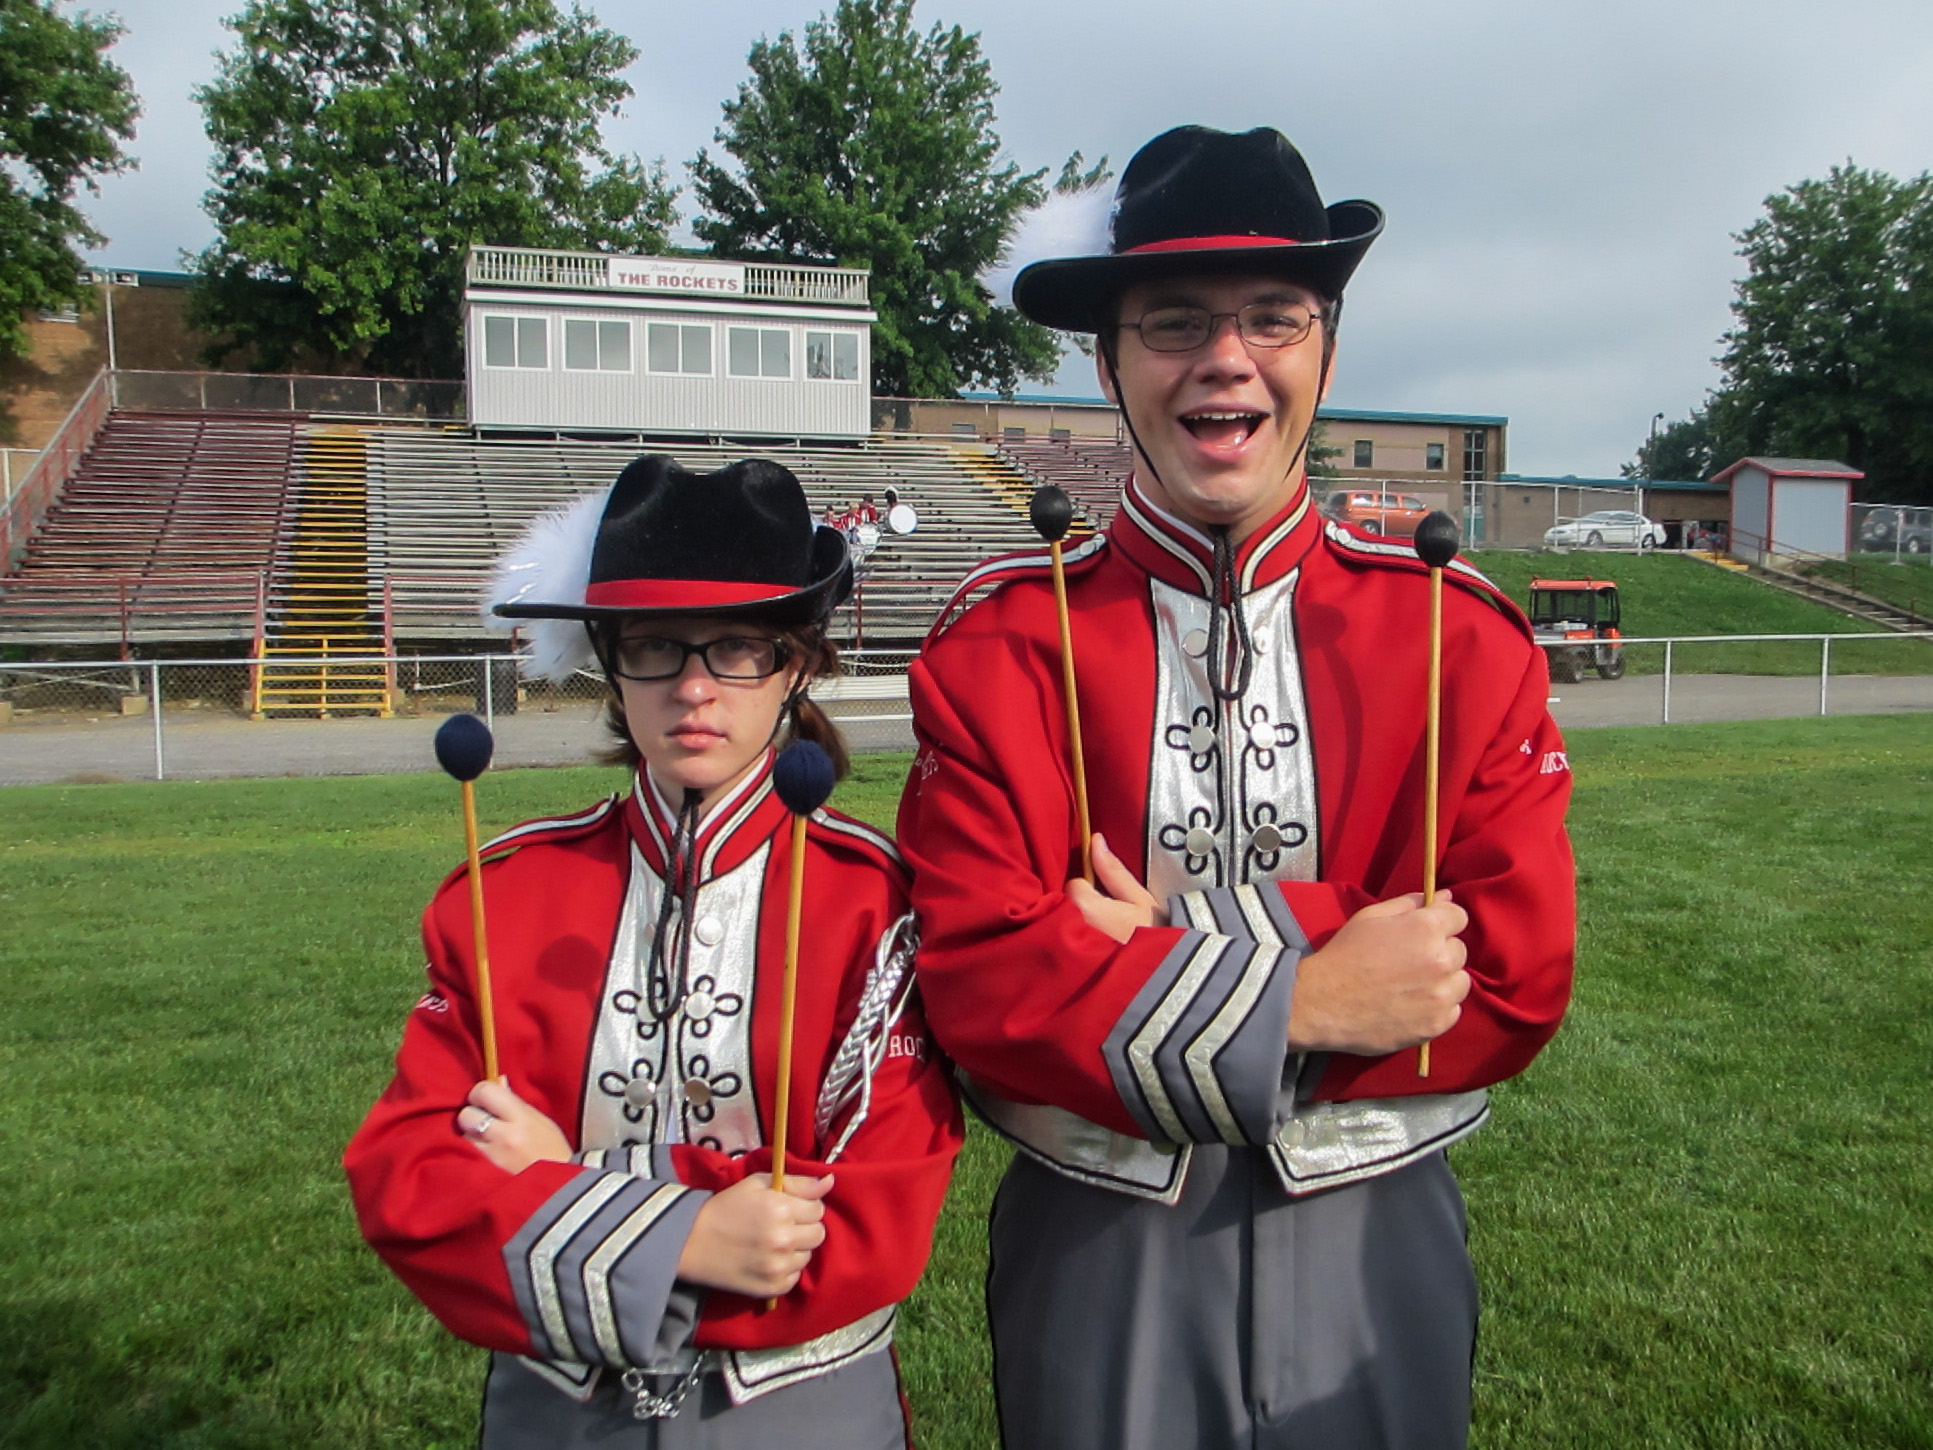 2012 09 Brynn & Joe at Band Camp.jpg